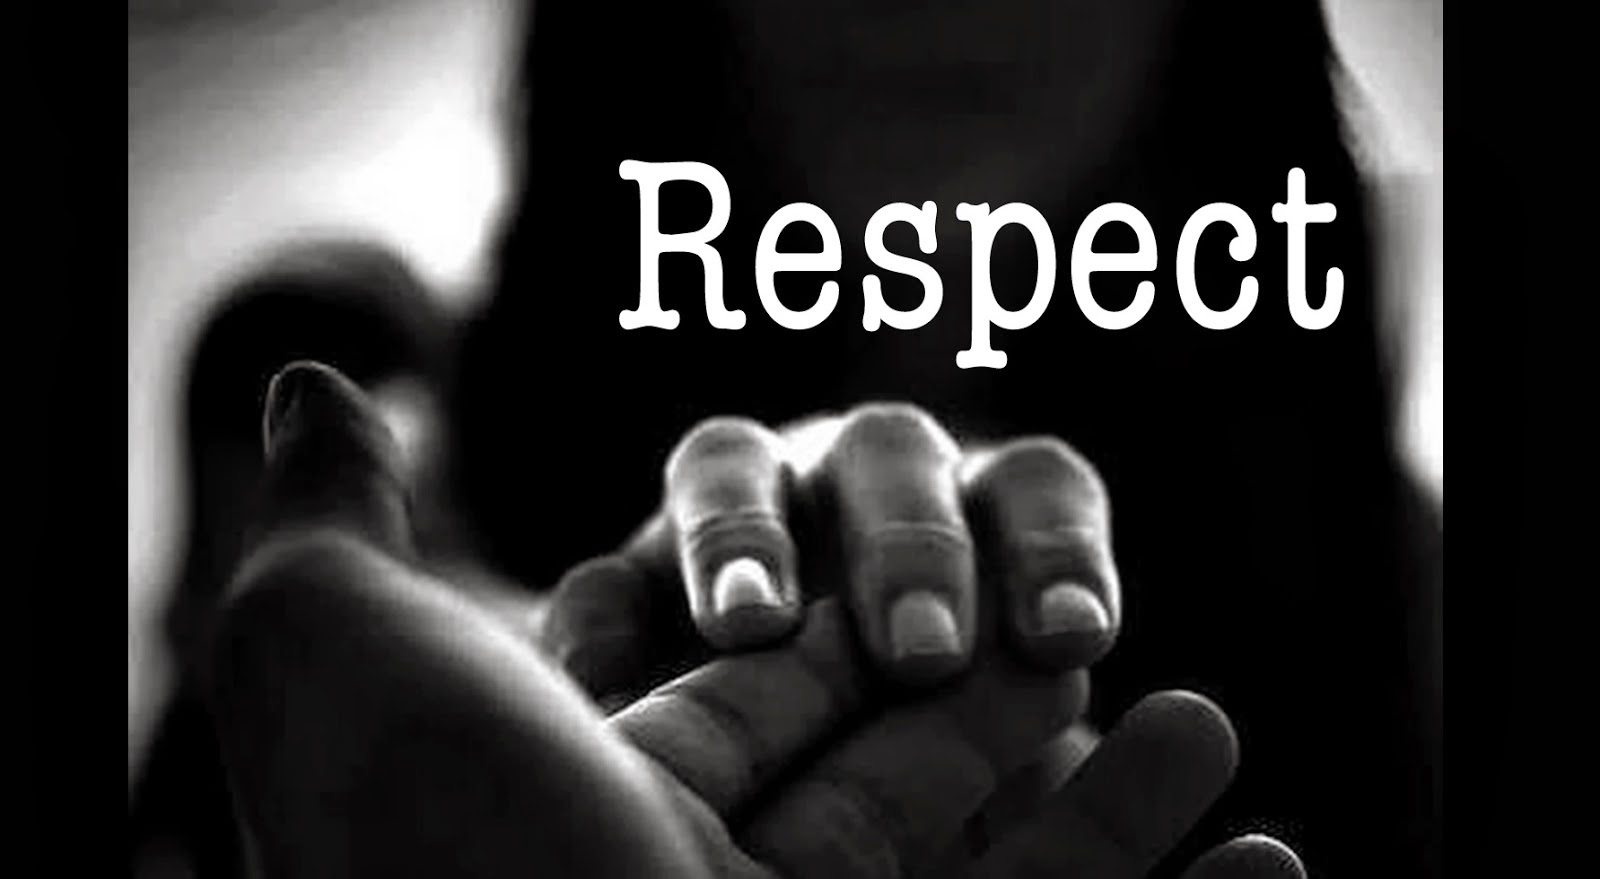 7 Things Everyone Should Know About Respect